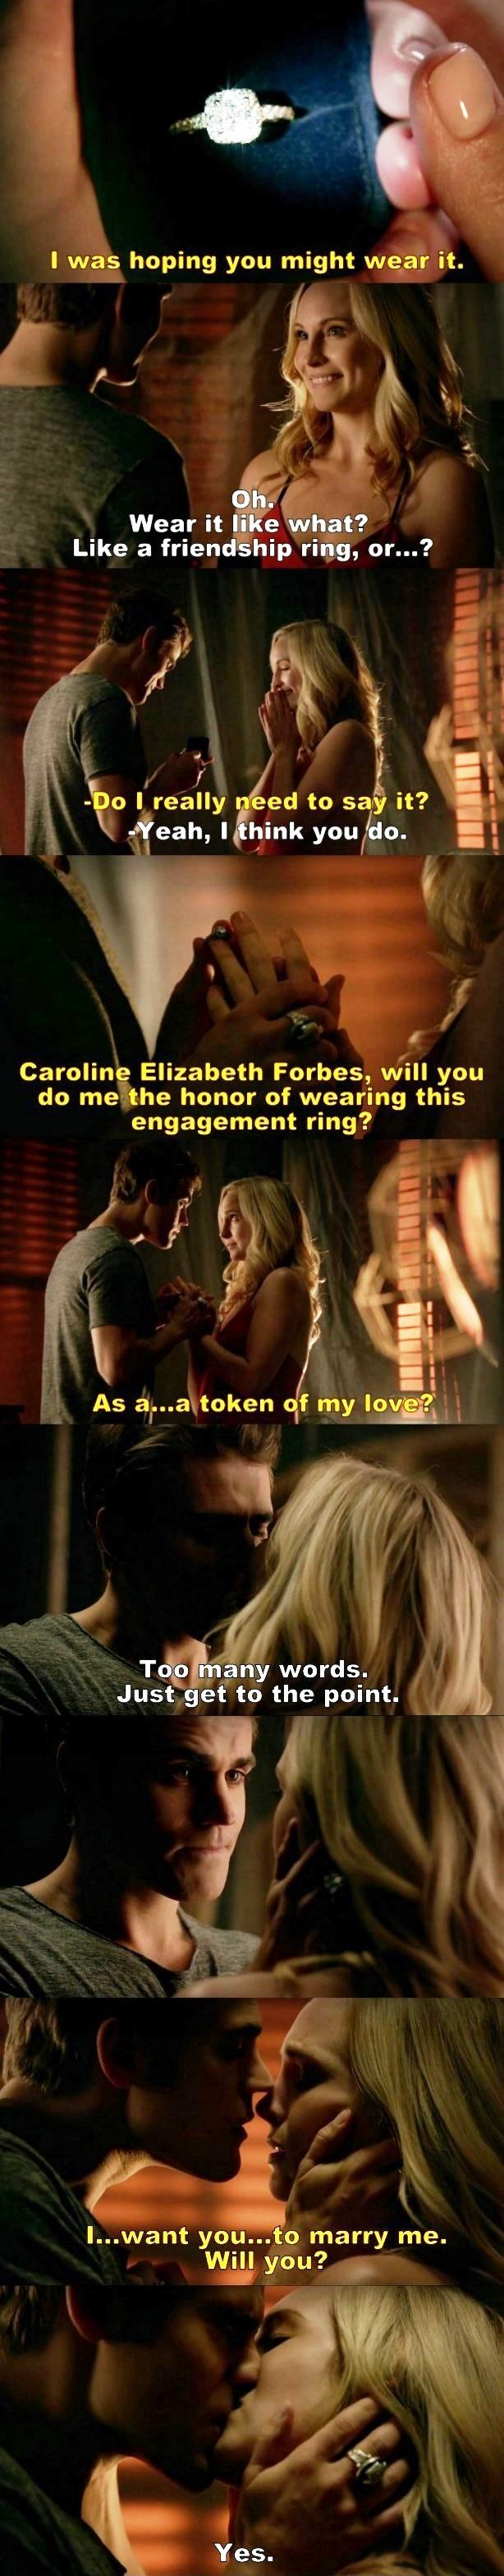 I died during this scene! I am so happy for them even though they are fictional characters...